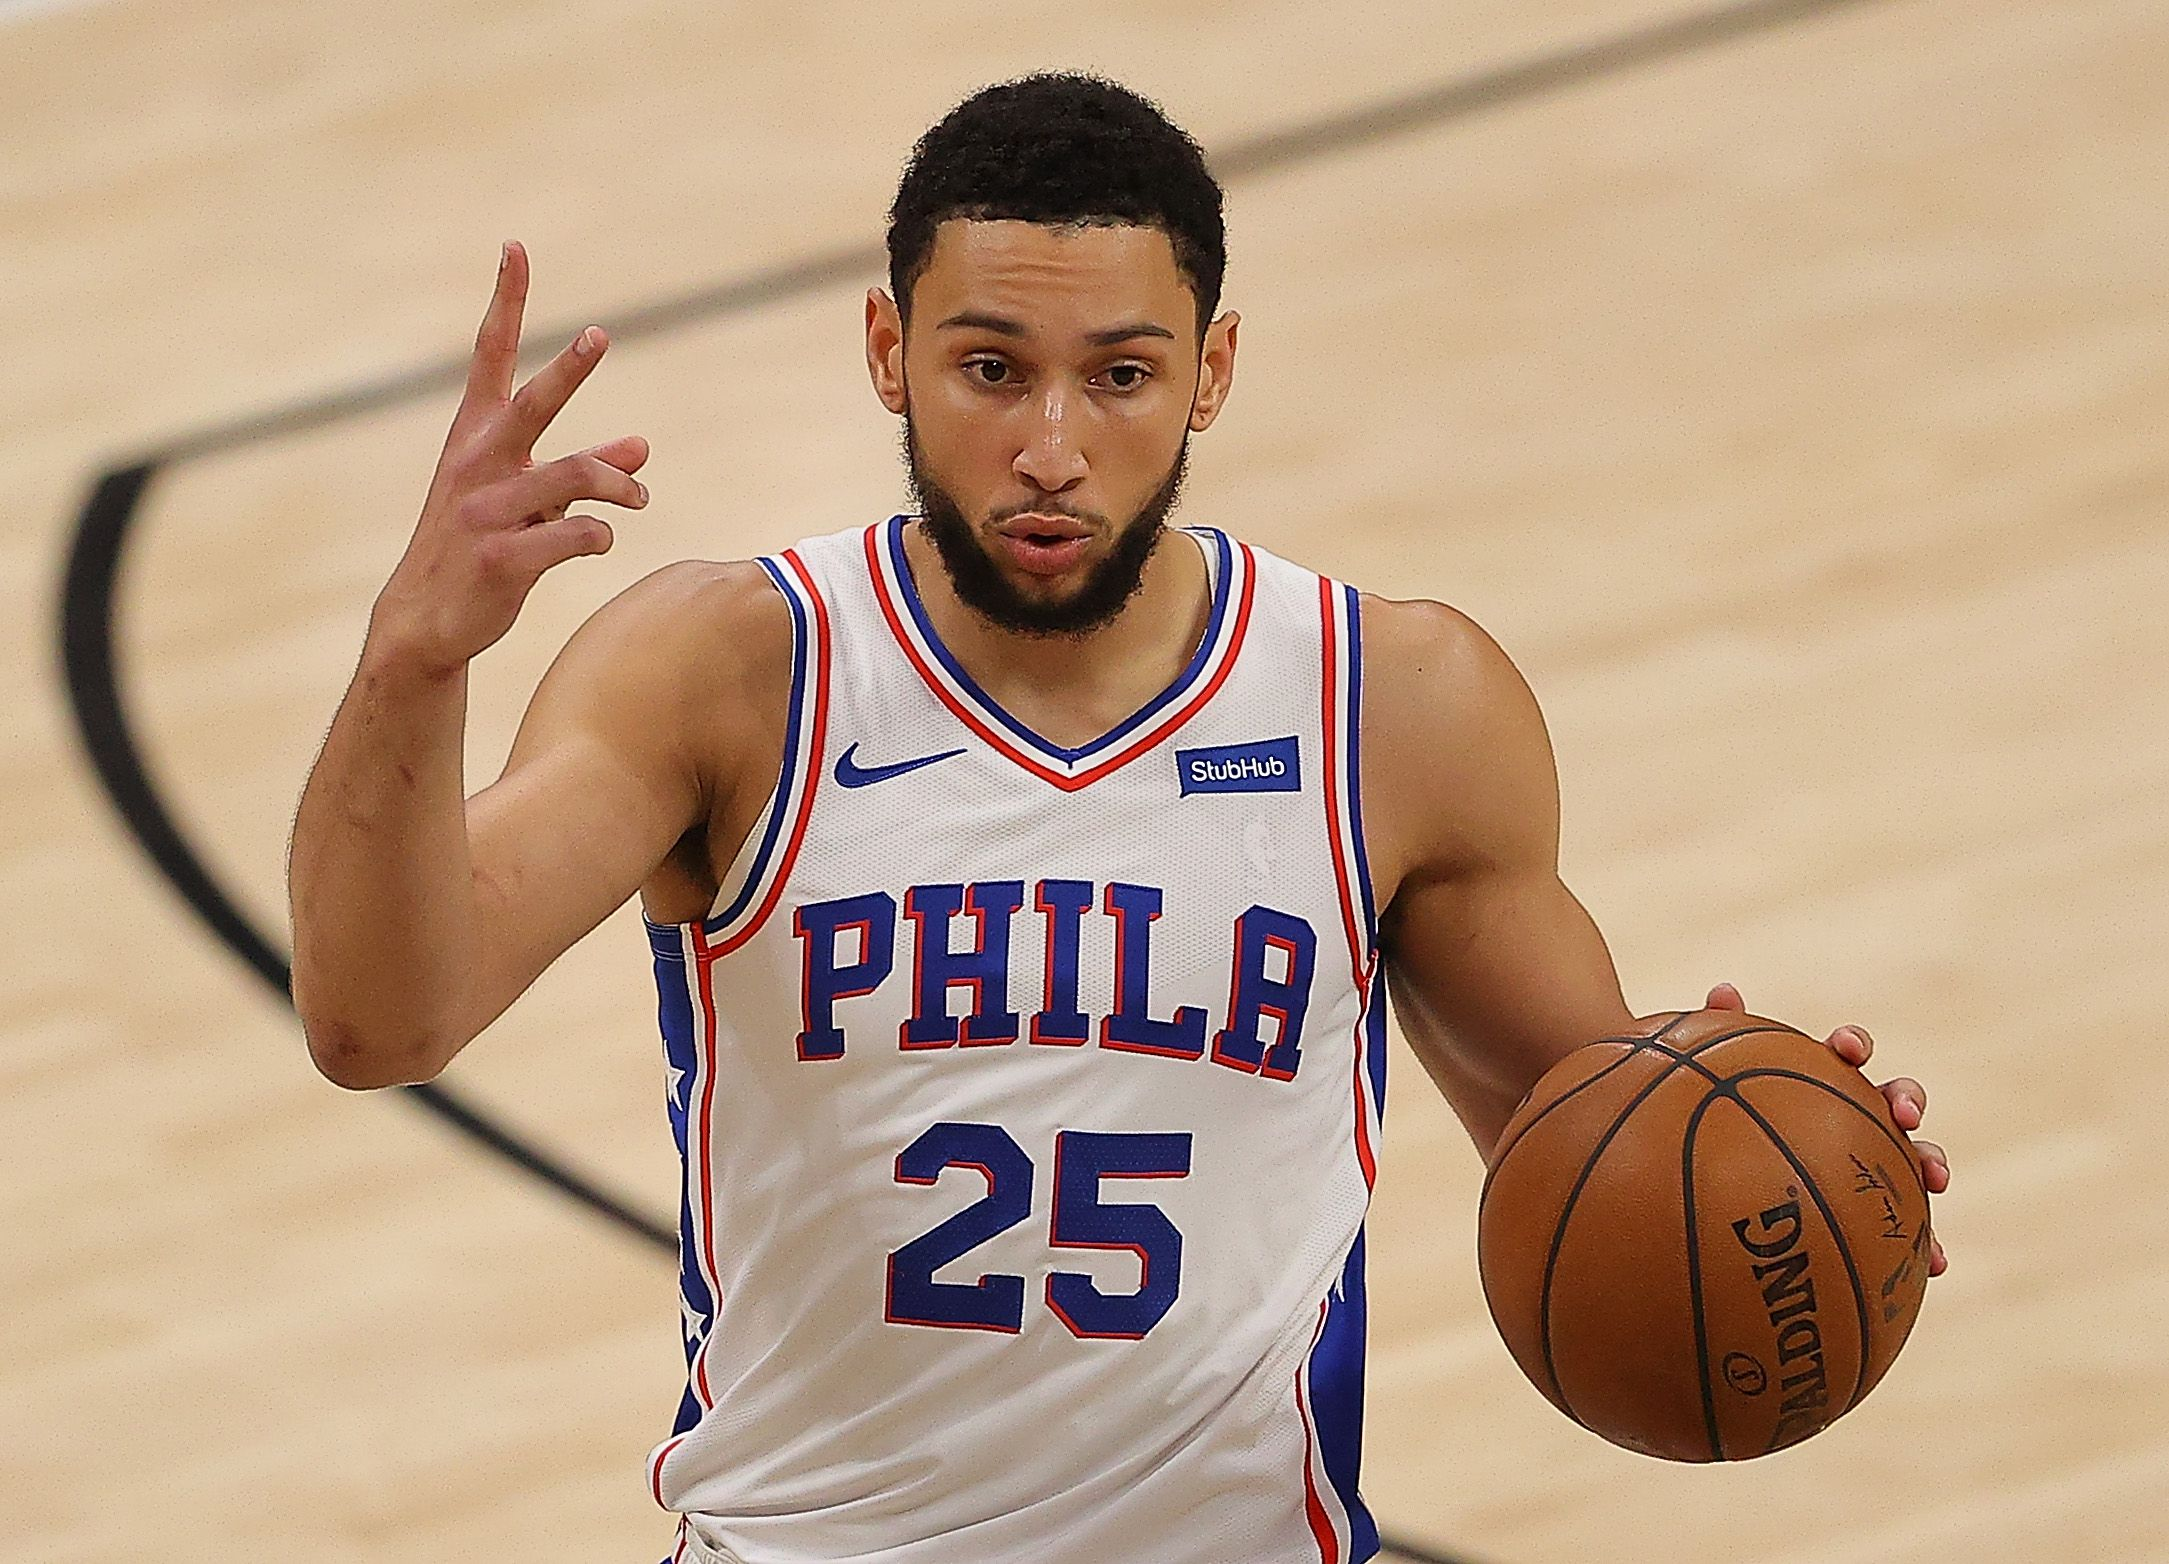 Ben Simmons making plays for the Sixers